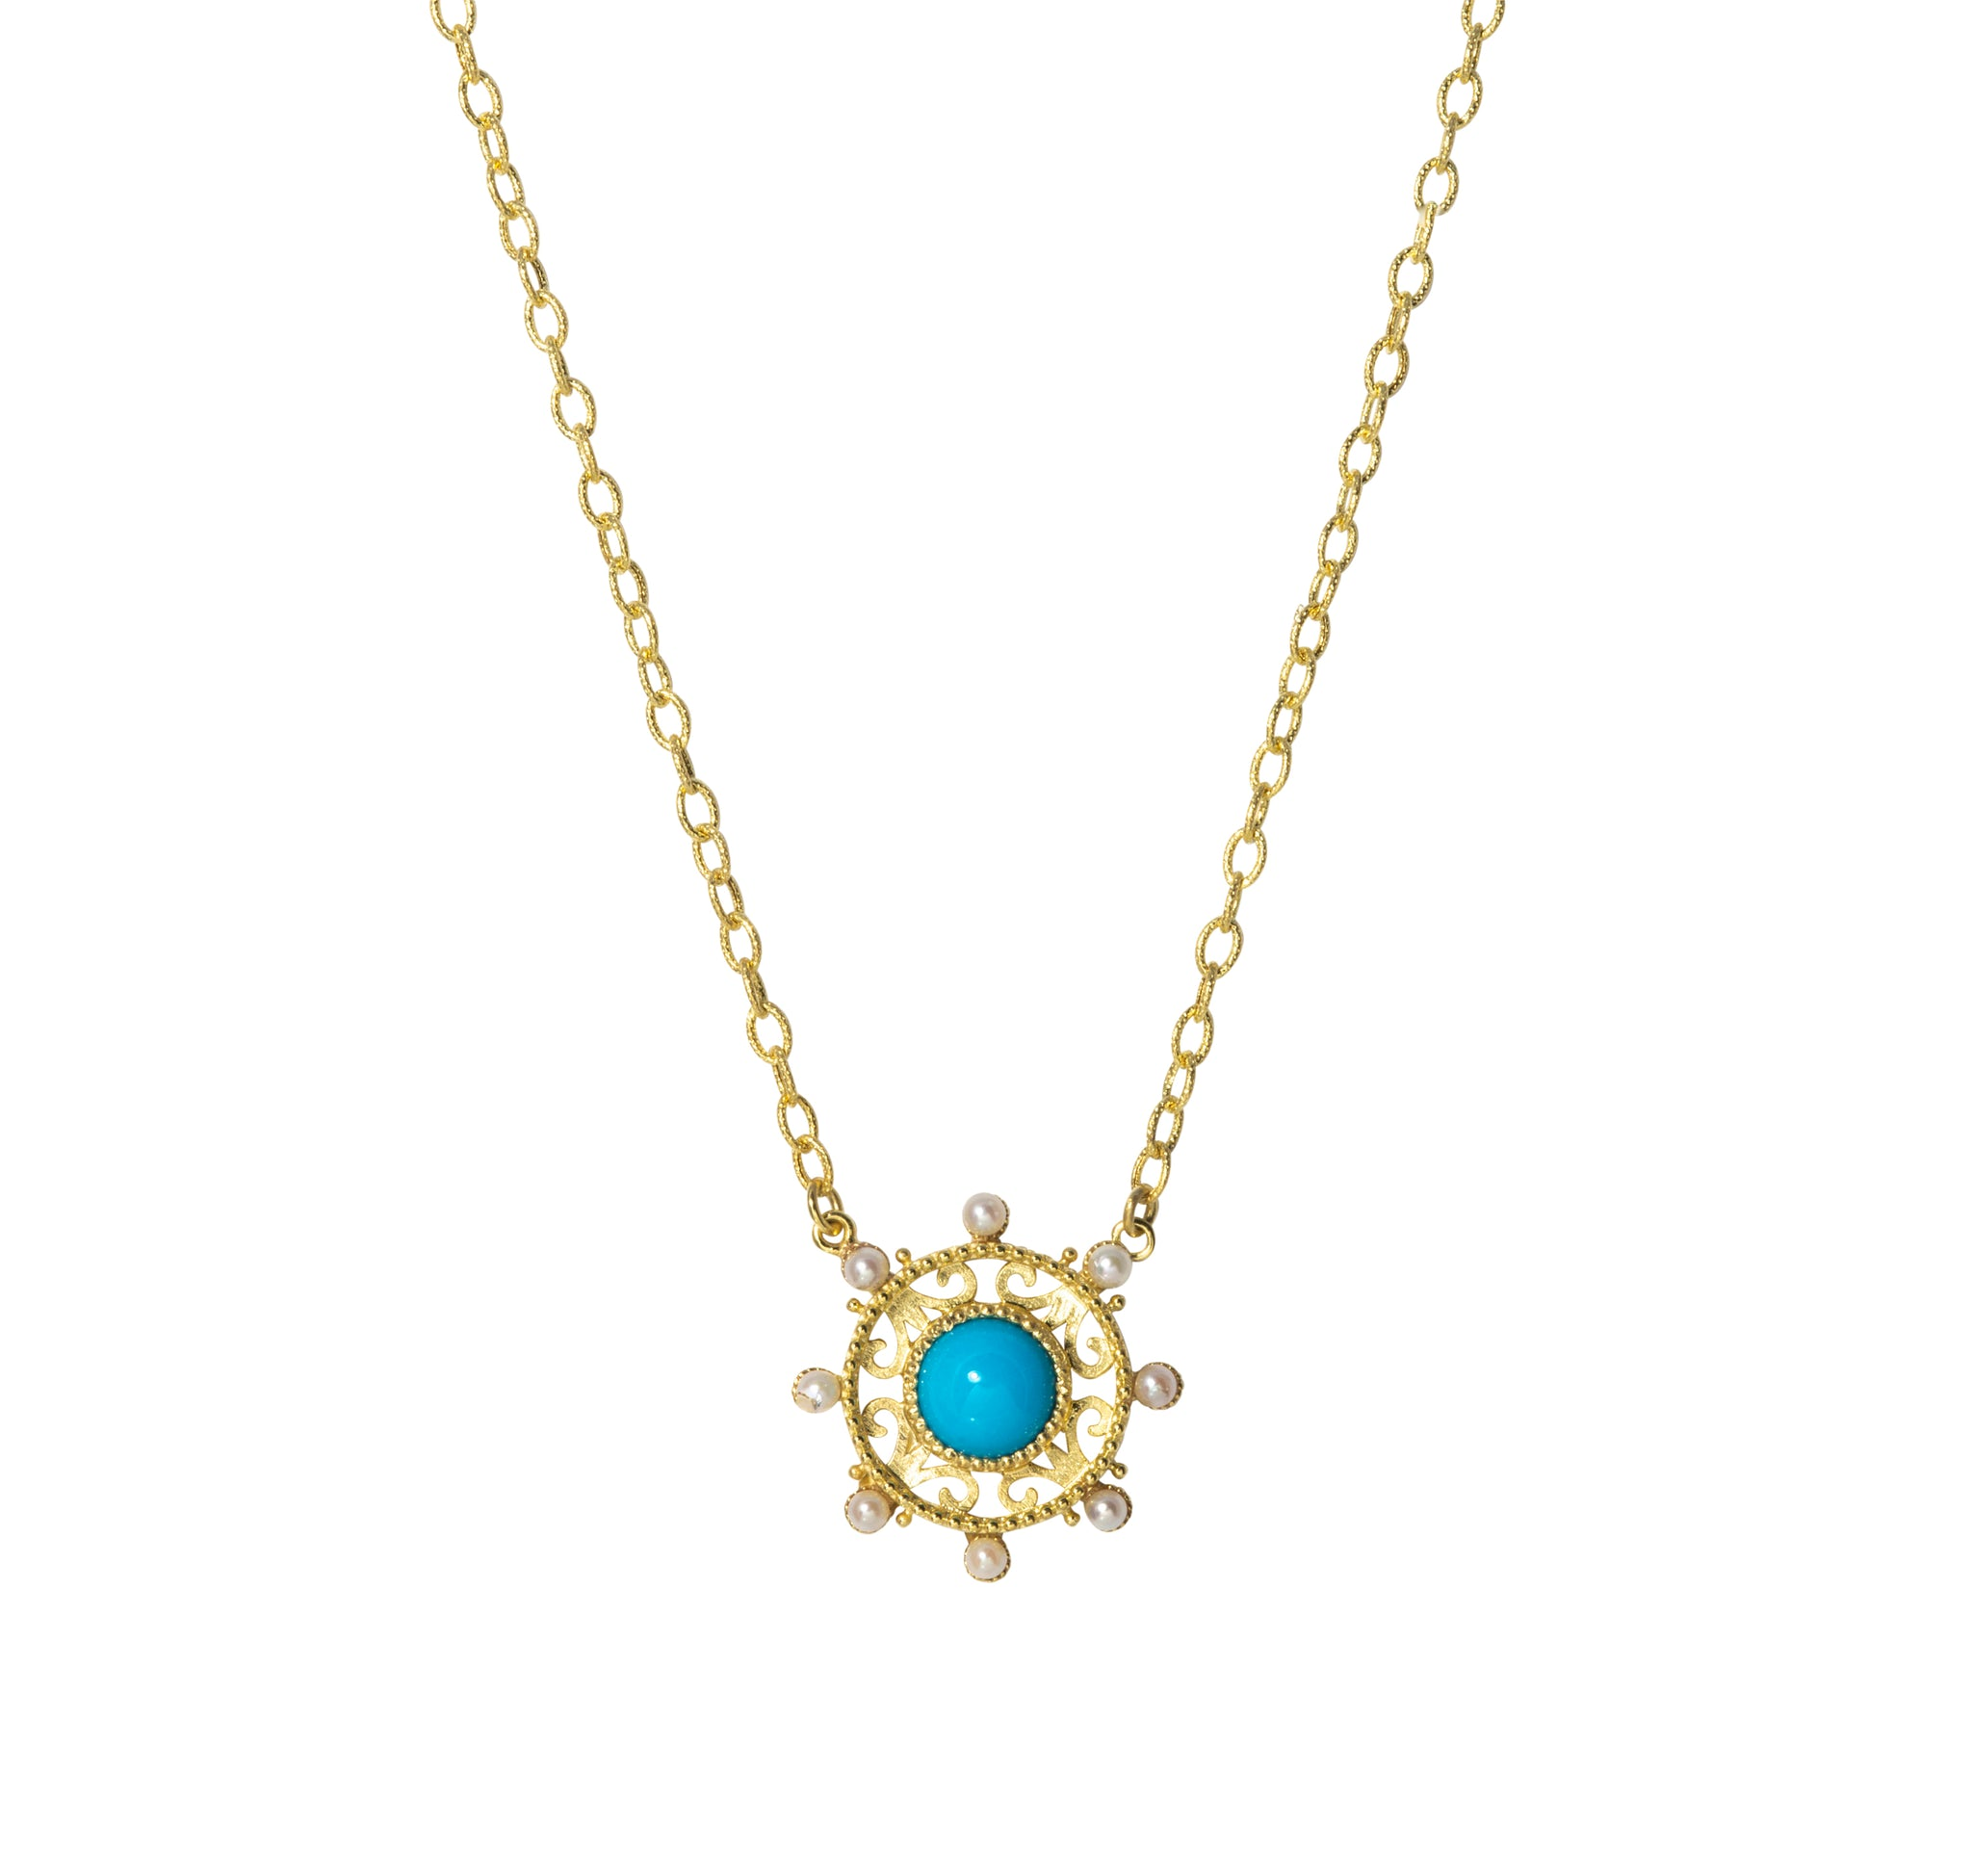 Turquoise & Pearl 14K Yellow Gold Medallion Pendant Necklace